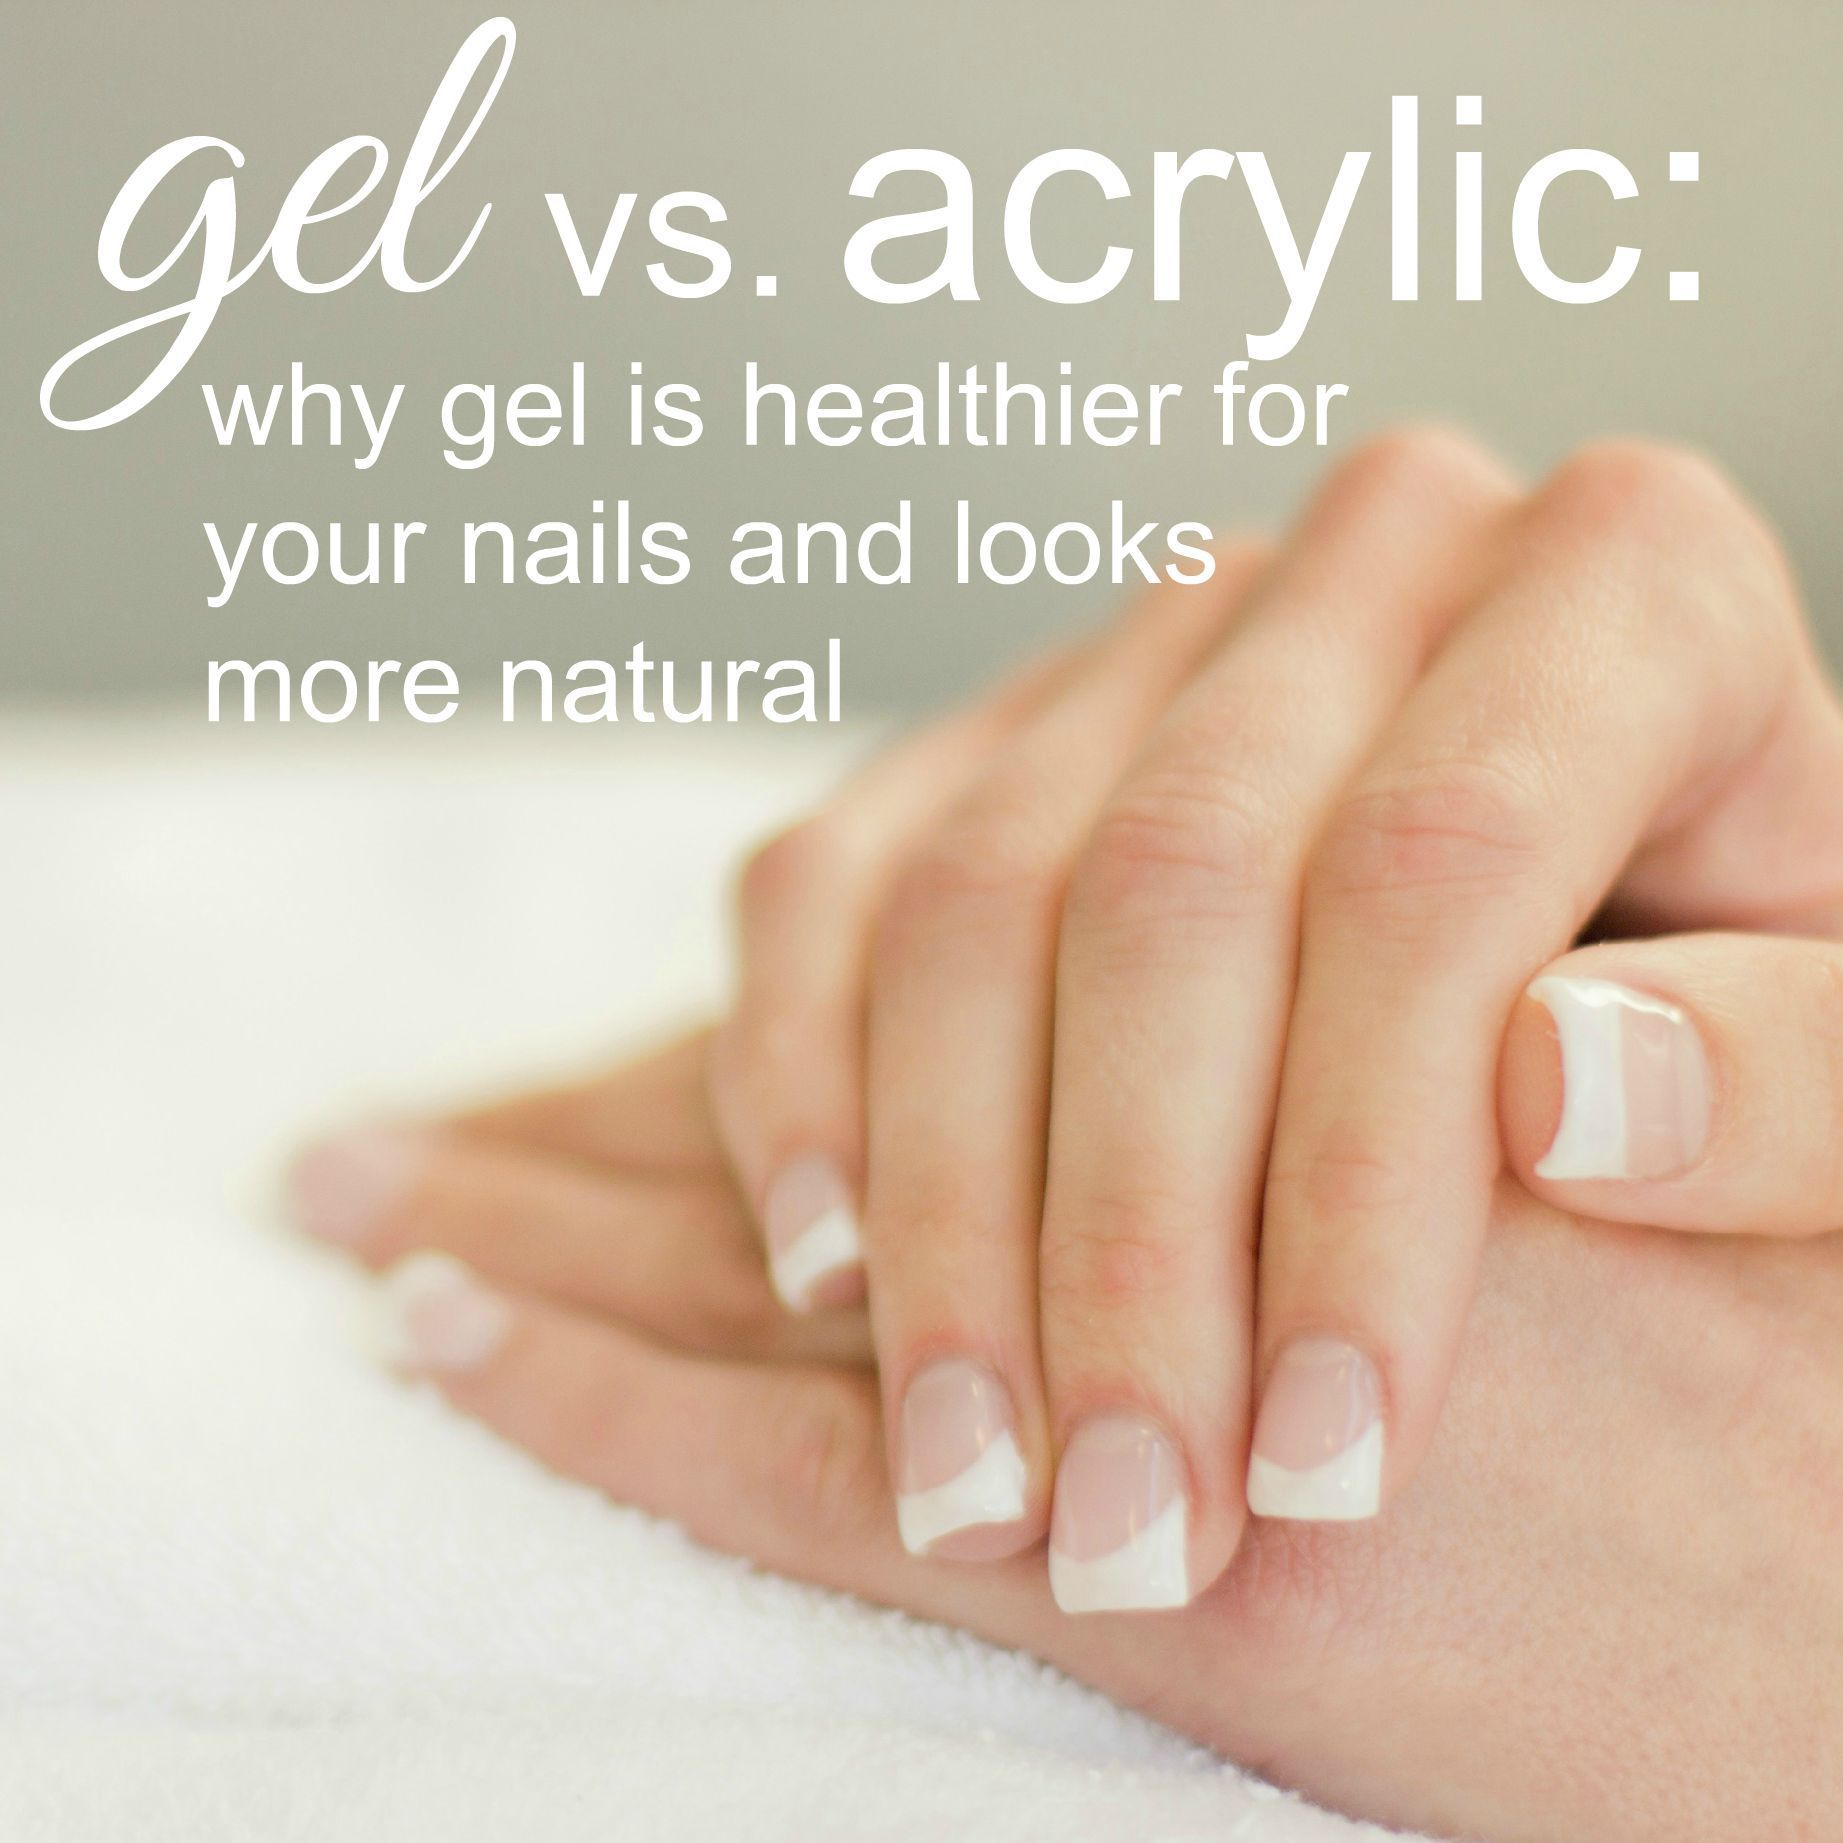 Learn All About Skin Care With These Tips | Gel vs acrylic ...